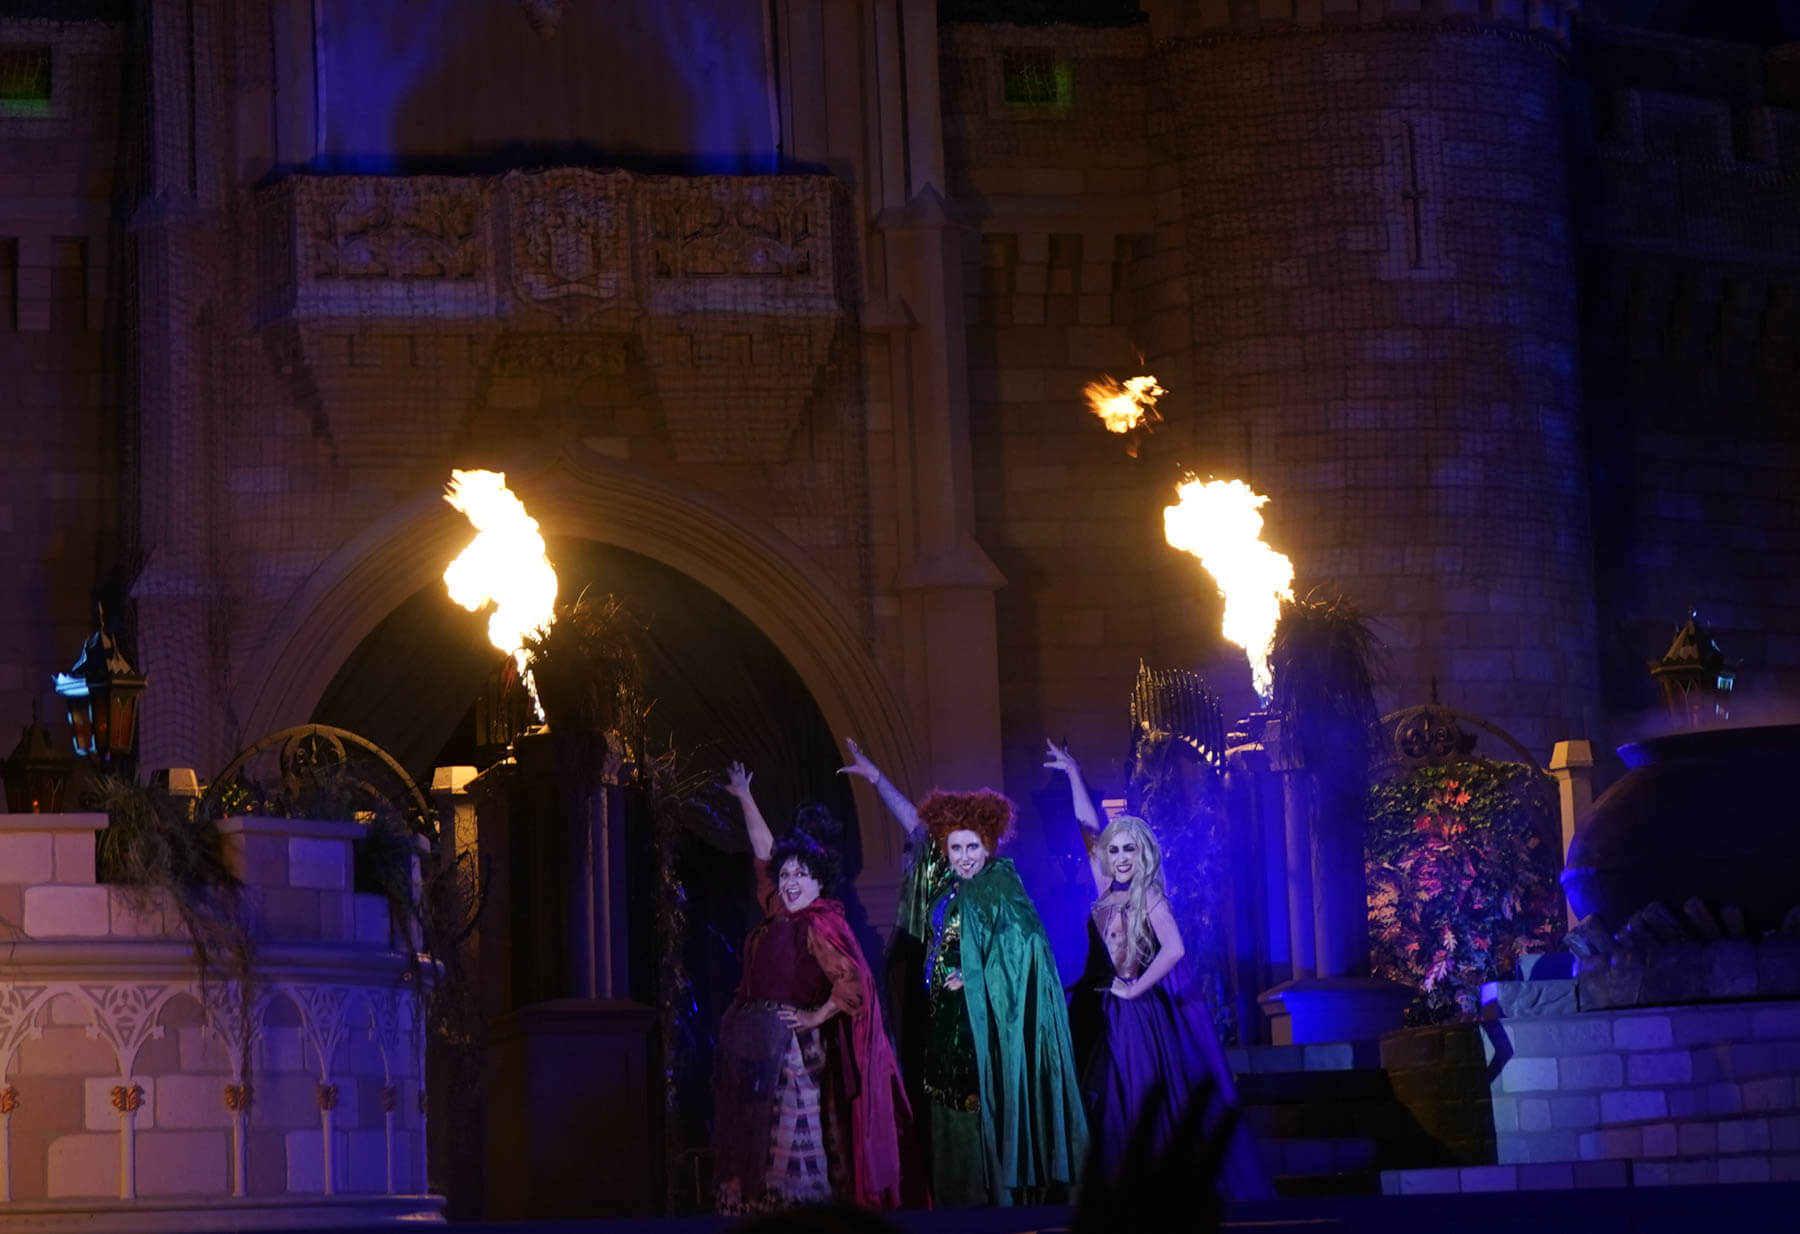 Sanderson Sisters at Disney World for the Hocus Pocus Villain Spelltacular show